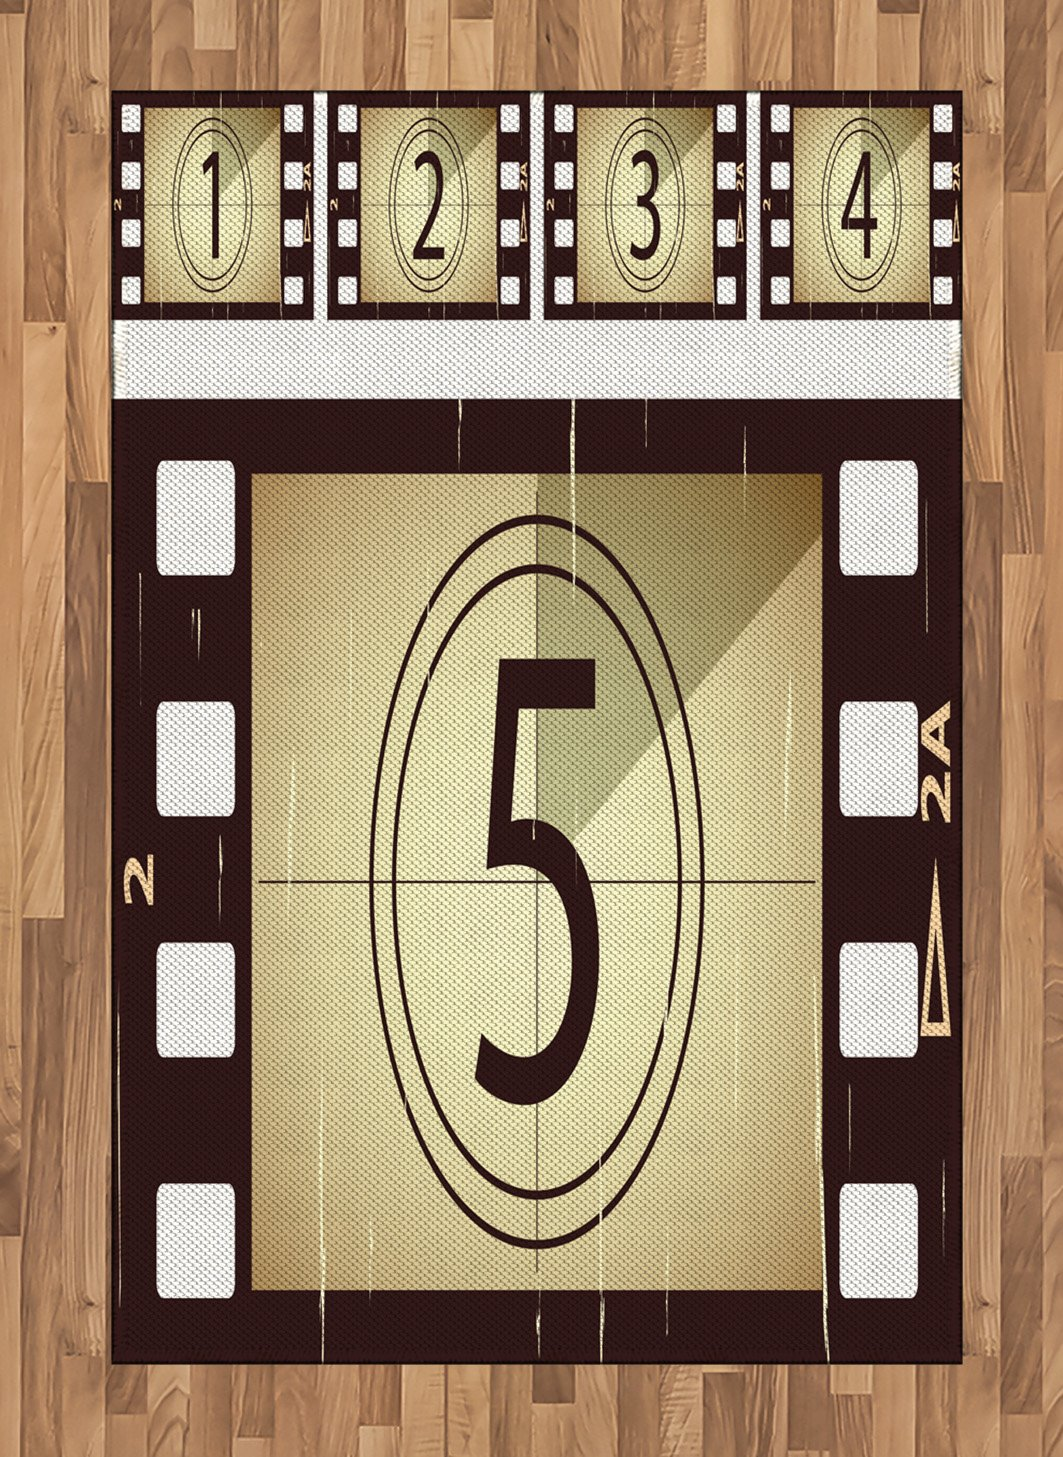 Ambesonne Movie Theater Area Rug, Scratched Film Strips Vintage Movie Frame Pattern Grunge Illustration, Flat Woven Accent Rug for Living Room Bedroom Dining Room, 4 X 5.7 FT, Beige Brown White